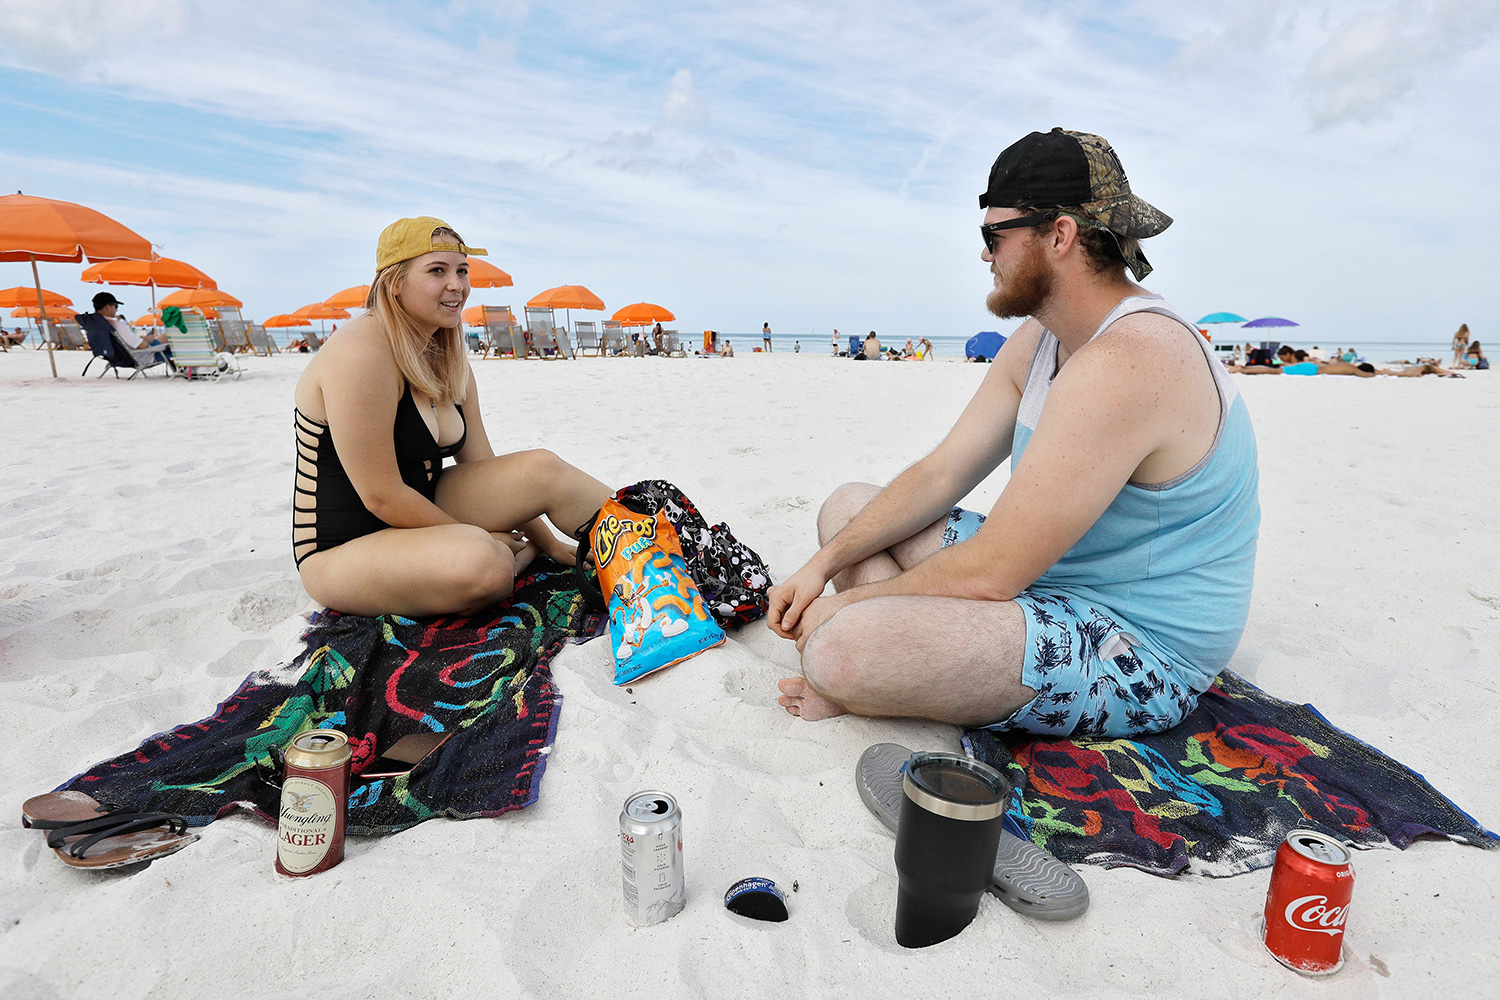 Students Erin West, left, of Wesley Chapel, Fla., and Jessie Wilcox, of Charleston, W.V., talk as they sit on North Beach, in Clearwater Beach, Fla. Beach goers are keeping a safe distance as they enjoy the Florida weather Virus Outbreak Florida Beaches, Clearwater Beach, United States - 17 Mar 2020